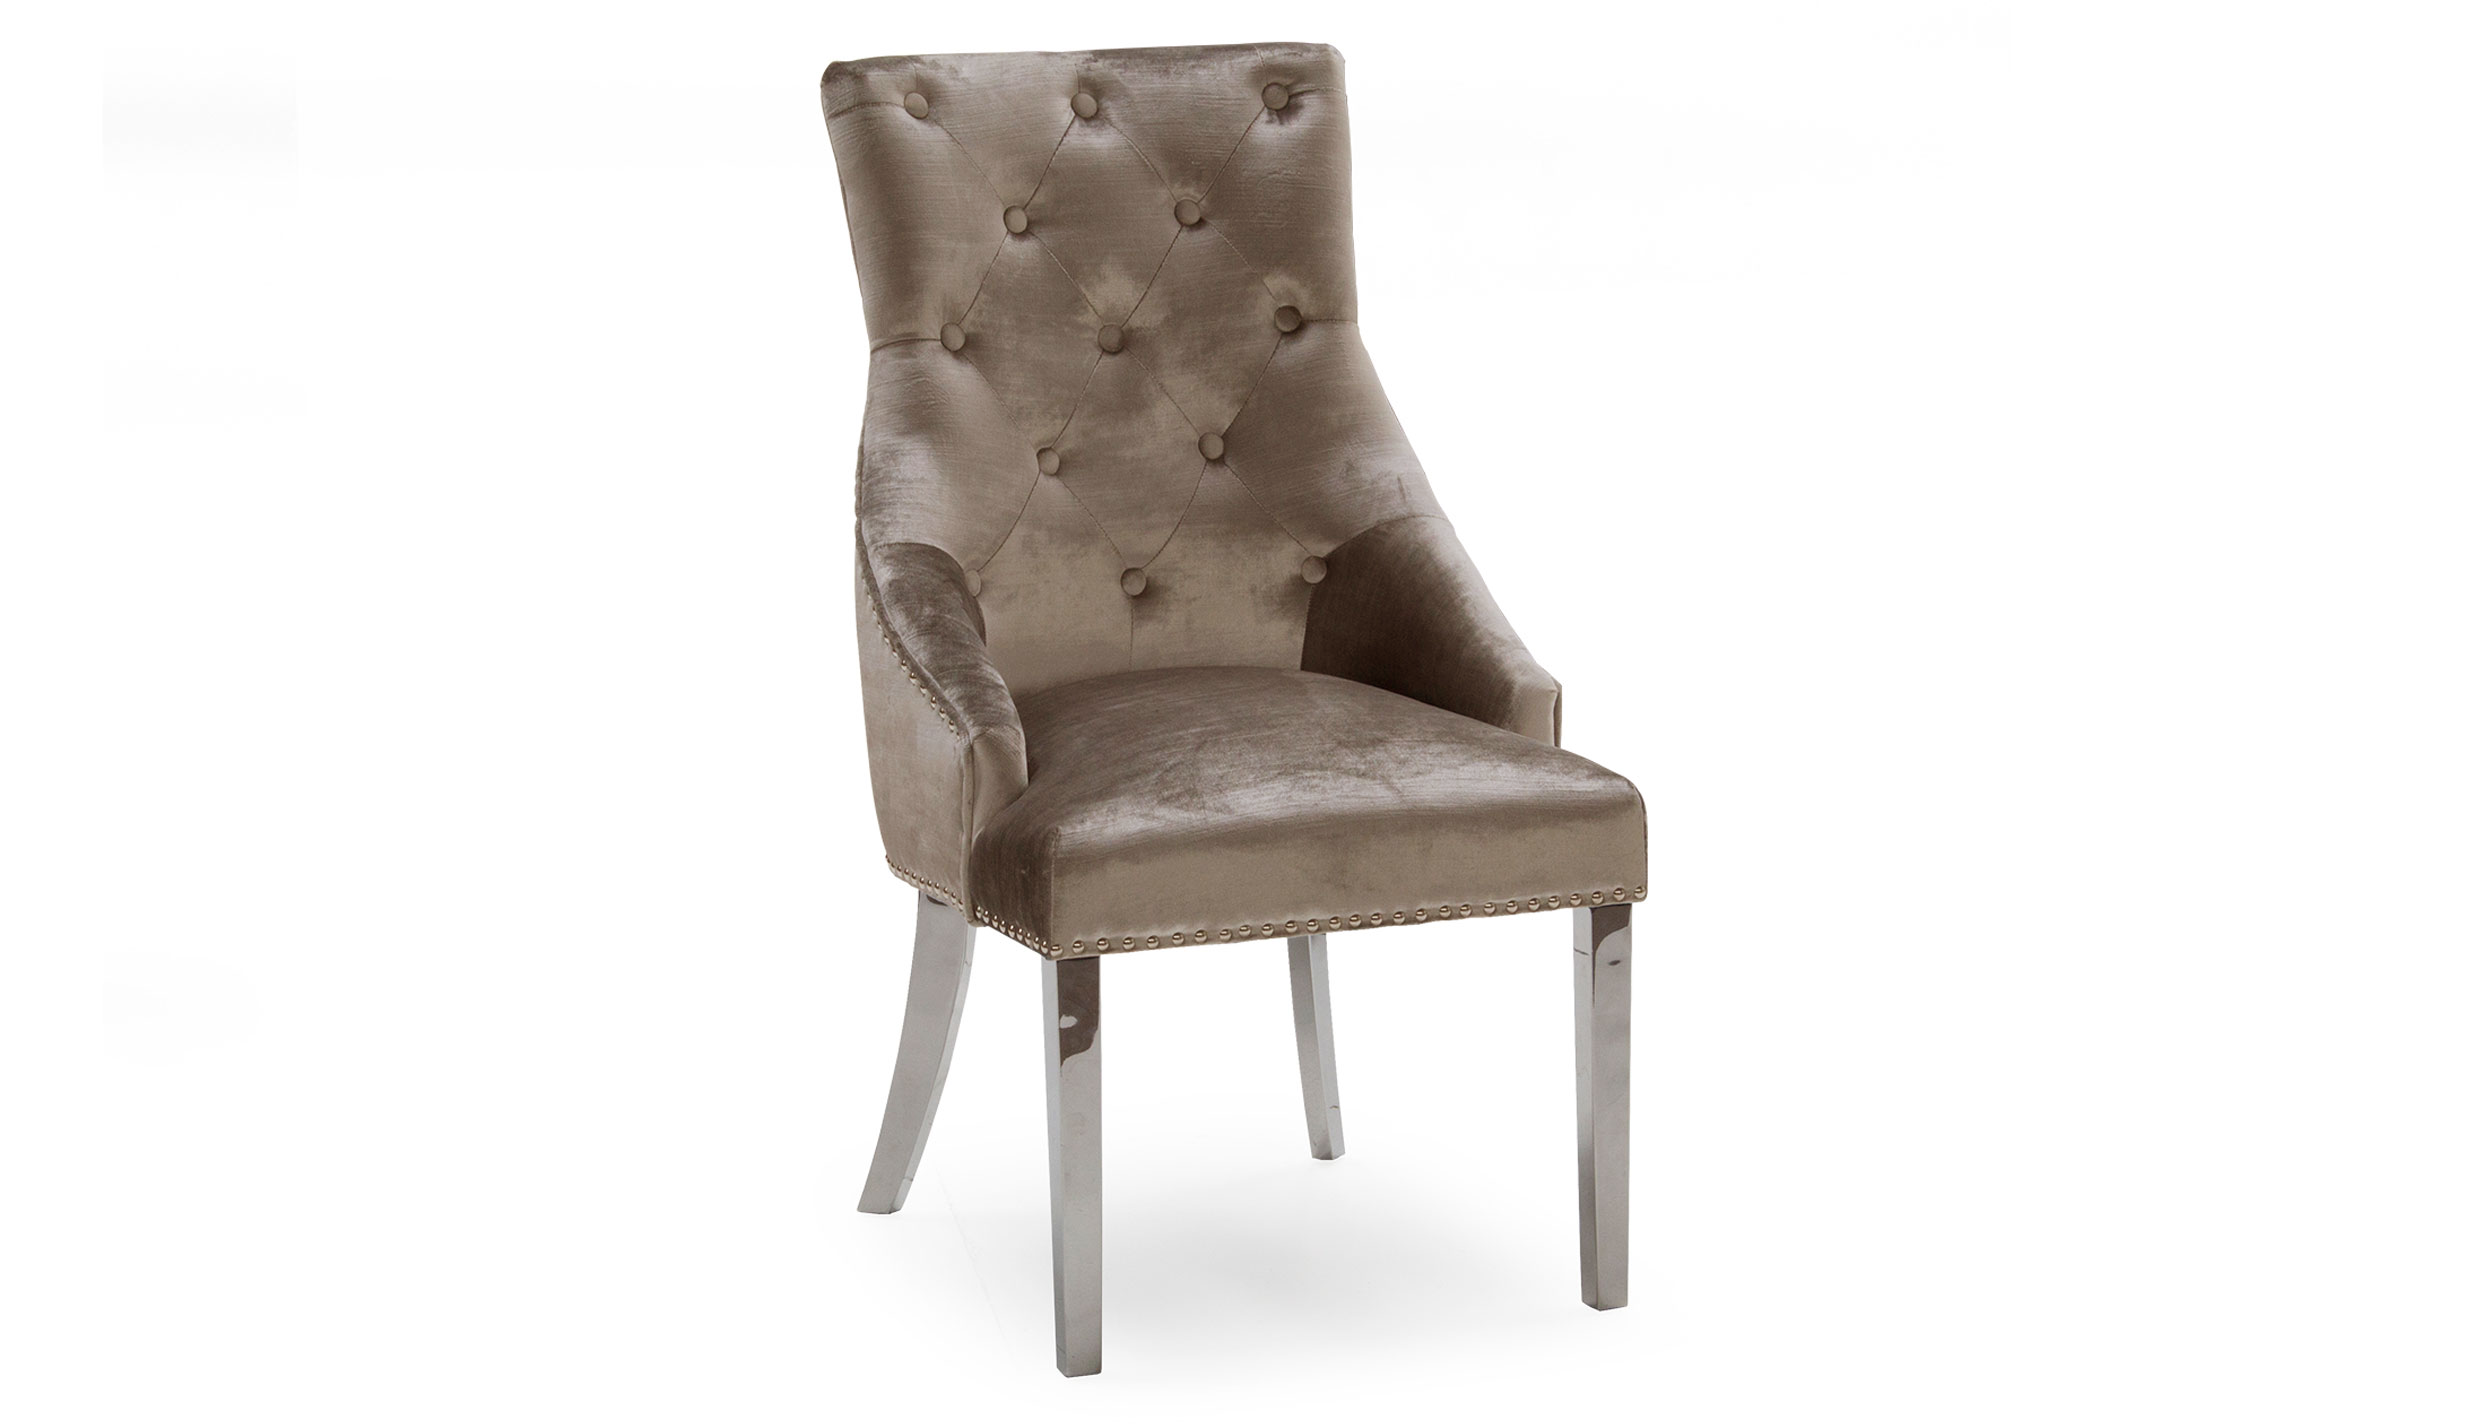 Amour Champagne Dining Chair - AHF Furniture & Carpets